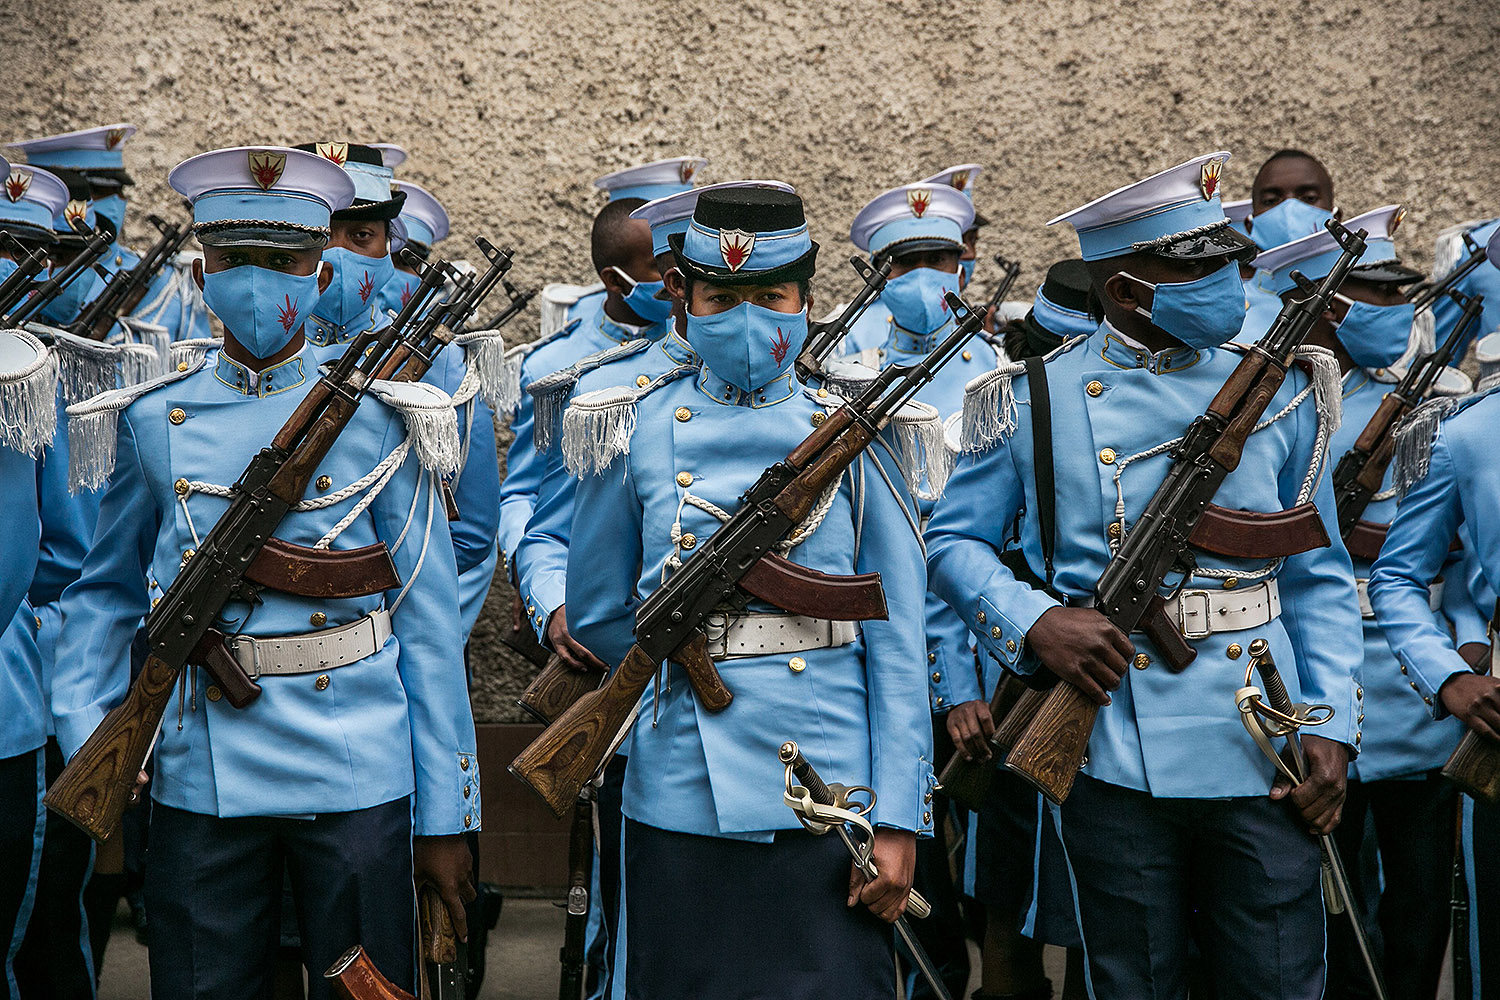 Students from the Antsi Military Academy are positioned in downtown Antananarivo, Madagascar, on June 26 before an Independence Day military parade. RIJASOLO/AFP via Getty Images